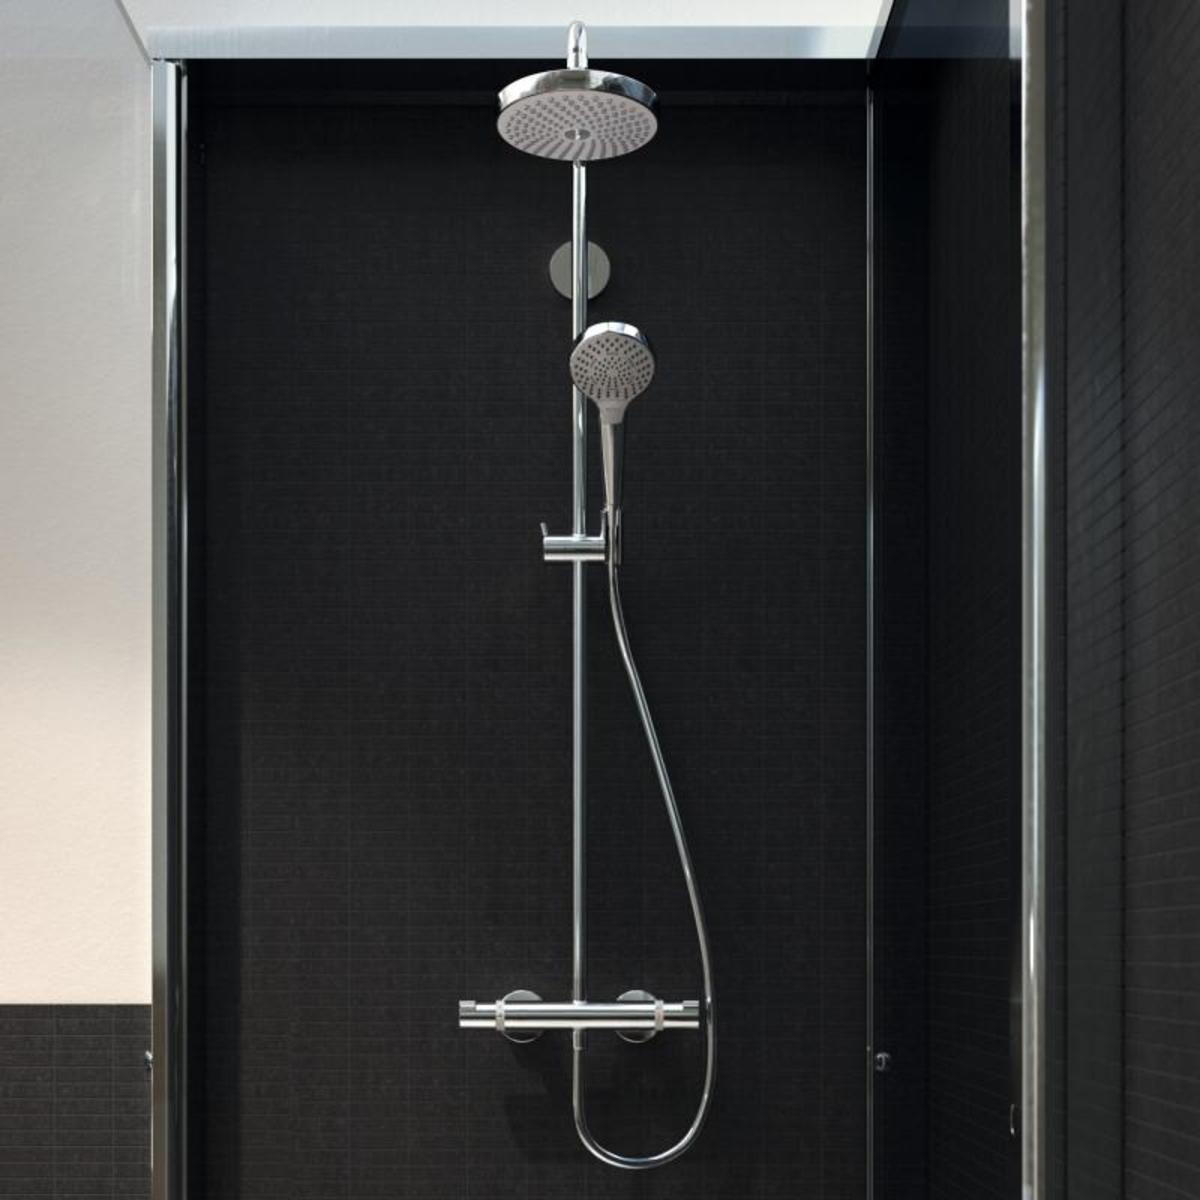 hansgrohe showerpipe croma select s 180 2jet ecosmart. Black Bedroom Furniture Sets. Home Design Ideas